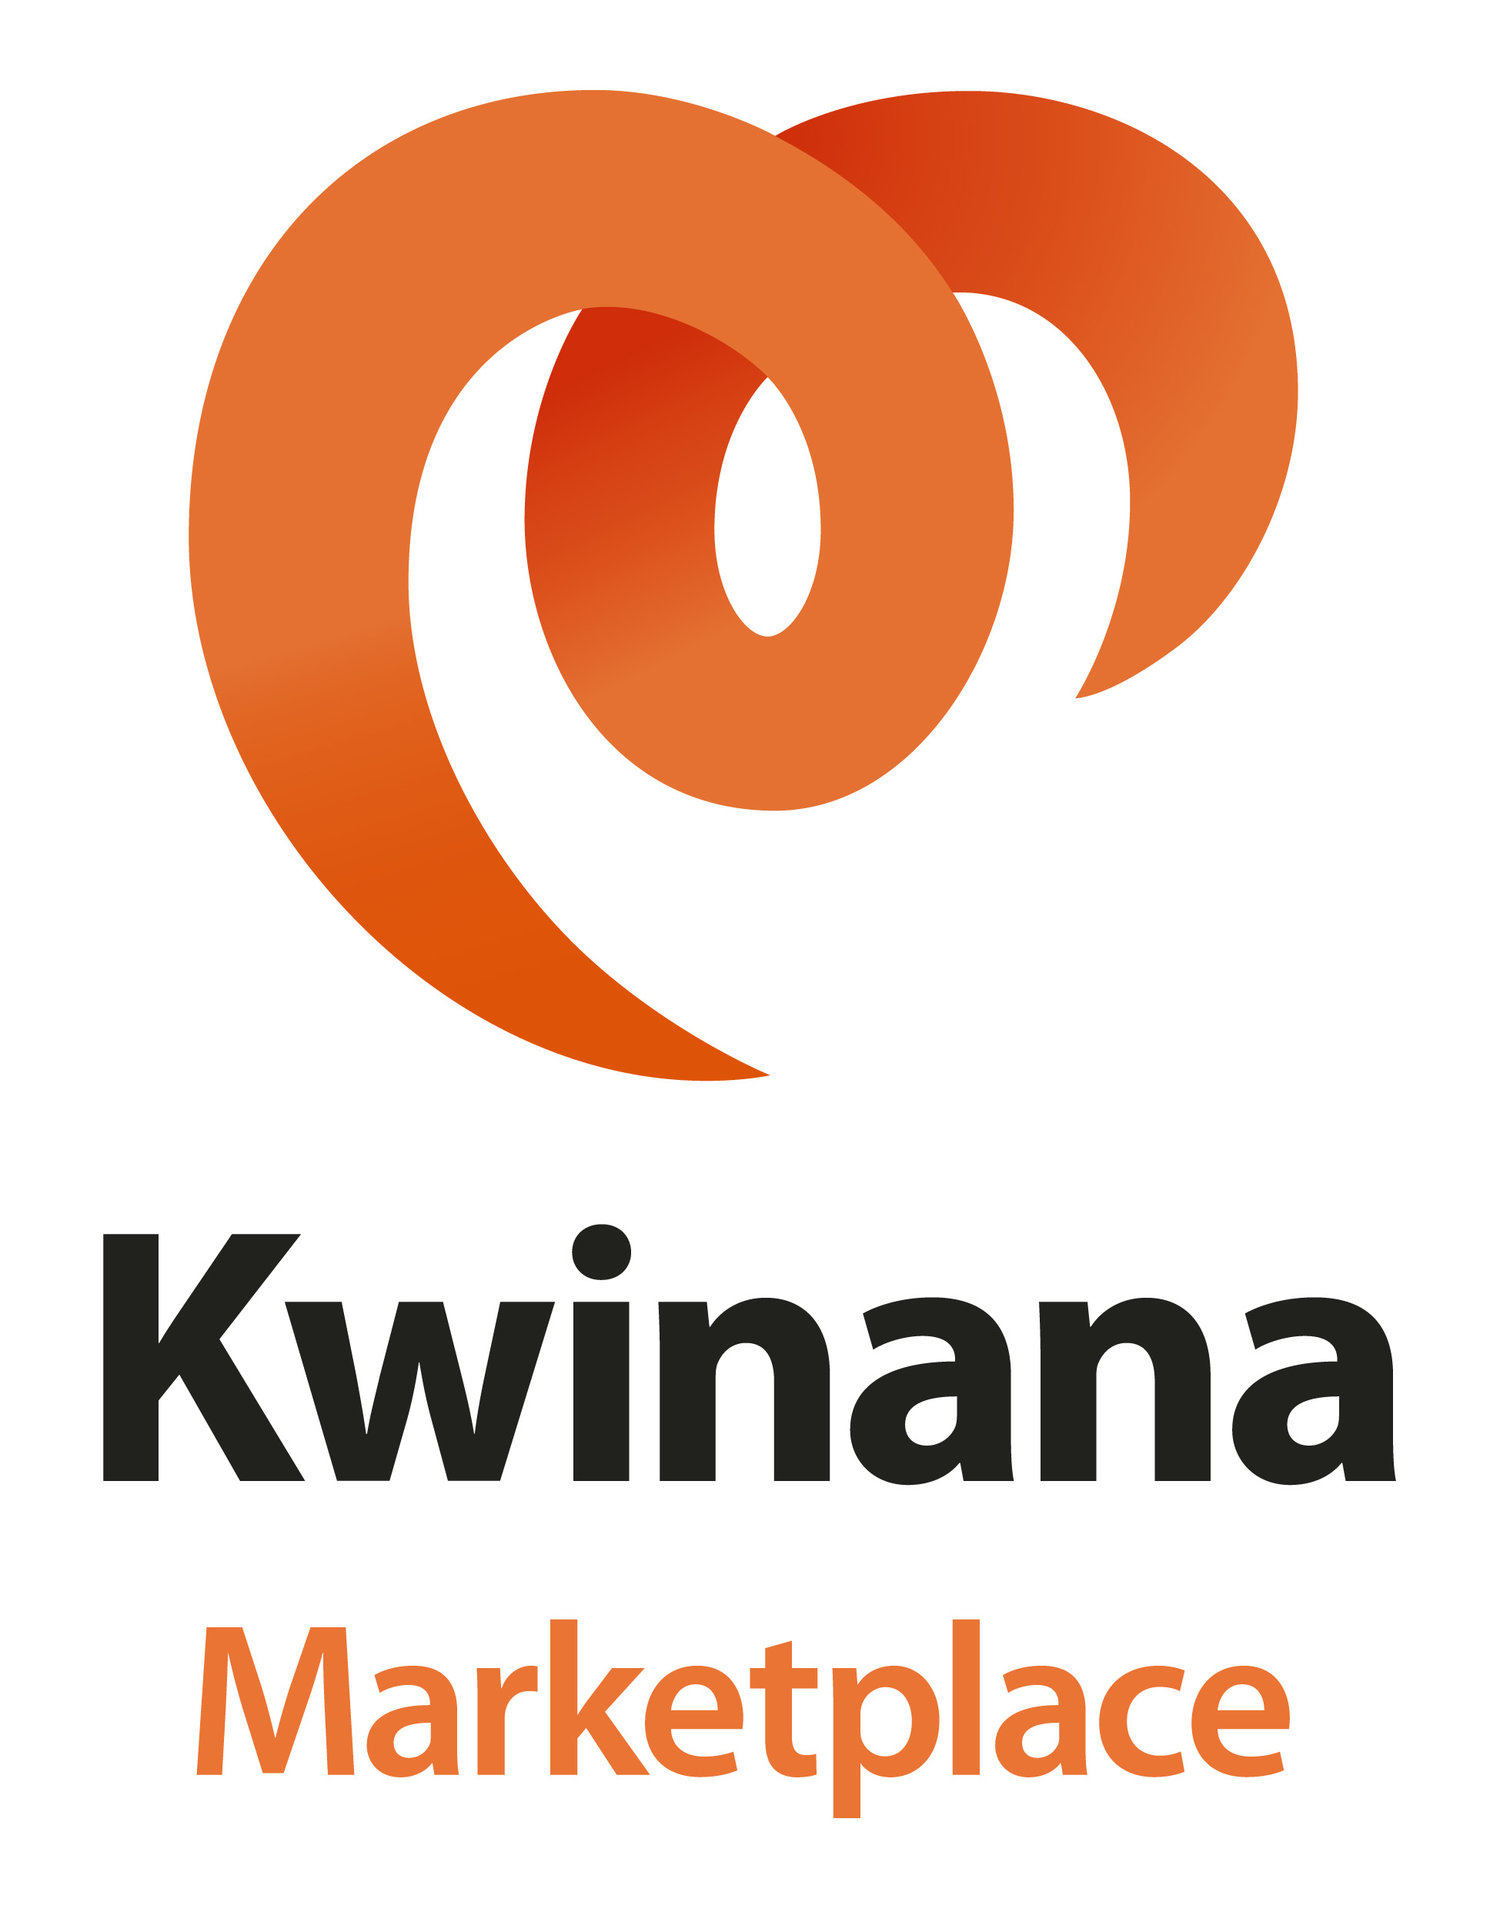 Kwinana Marketplace